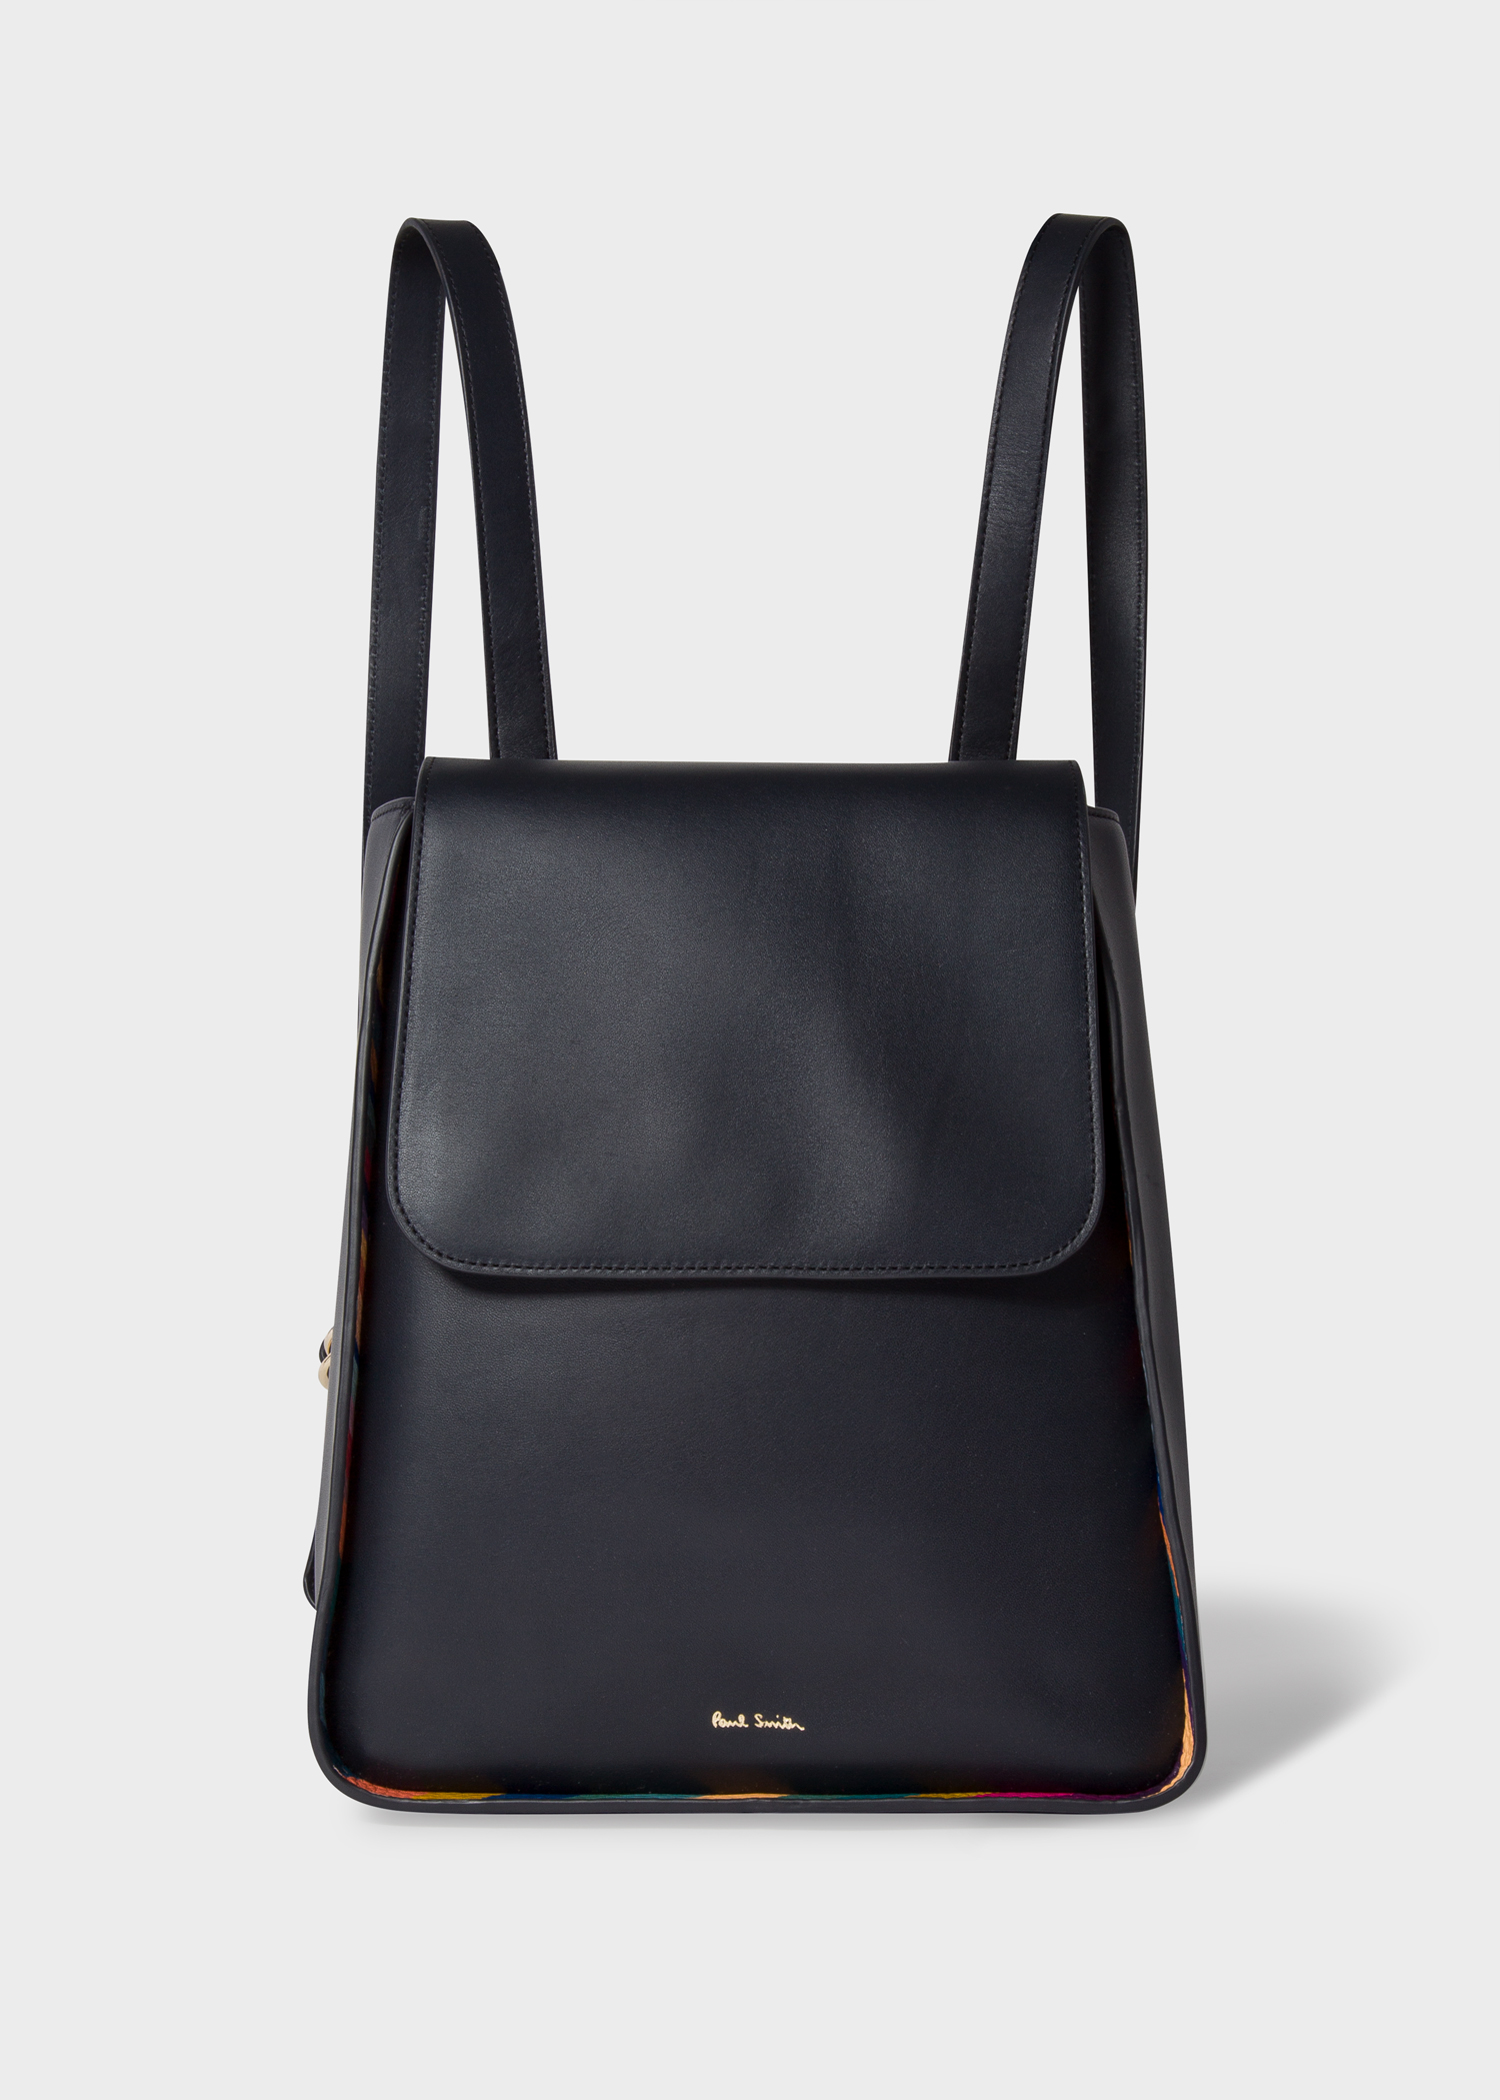 Front view - Women s Navy Leather Flap Backpack With  Swirl  Trims Paul  Smith 1d37f0d3a0